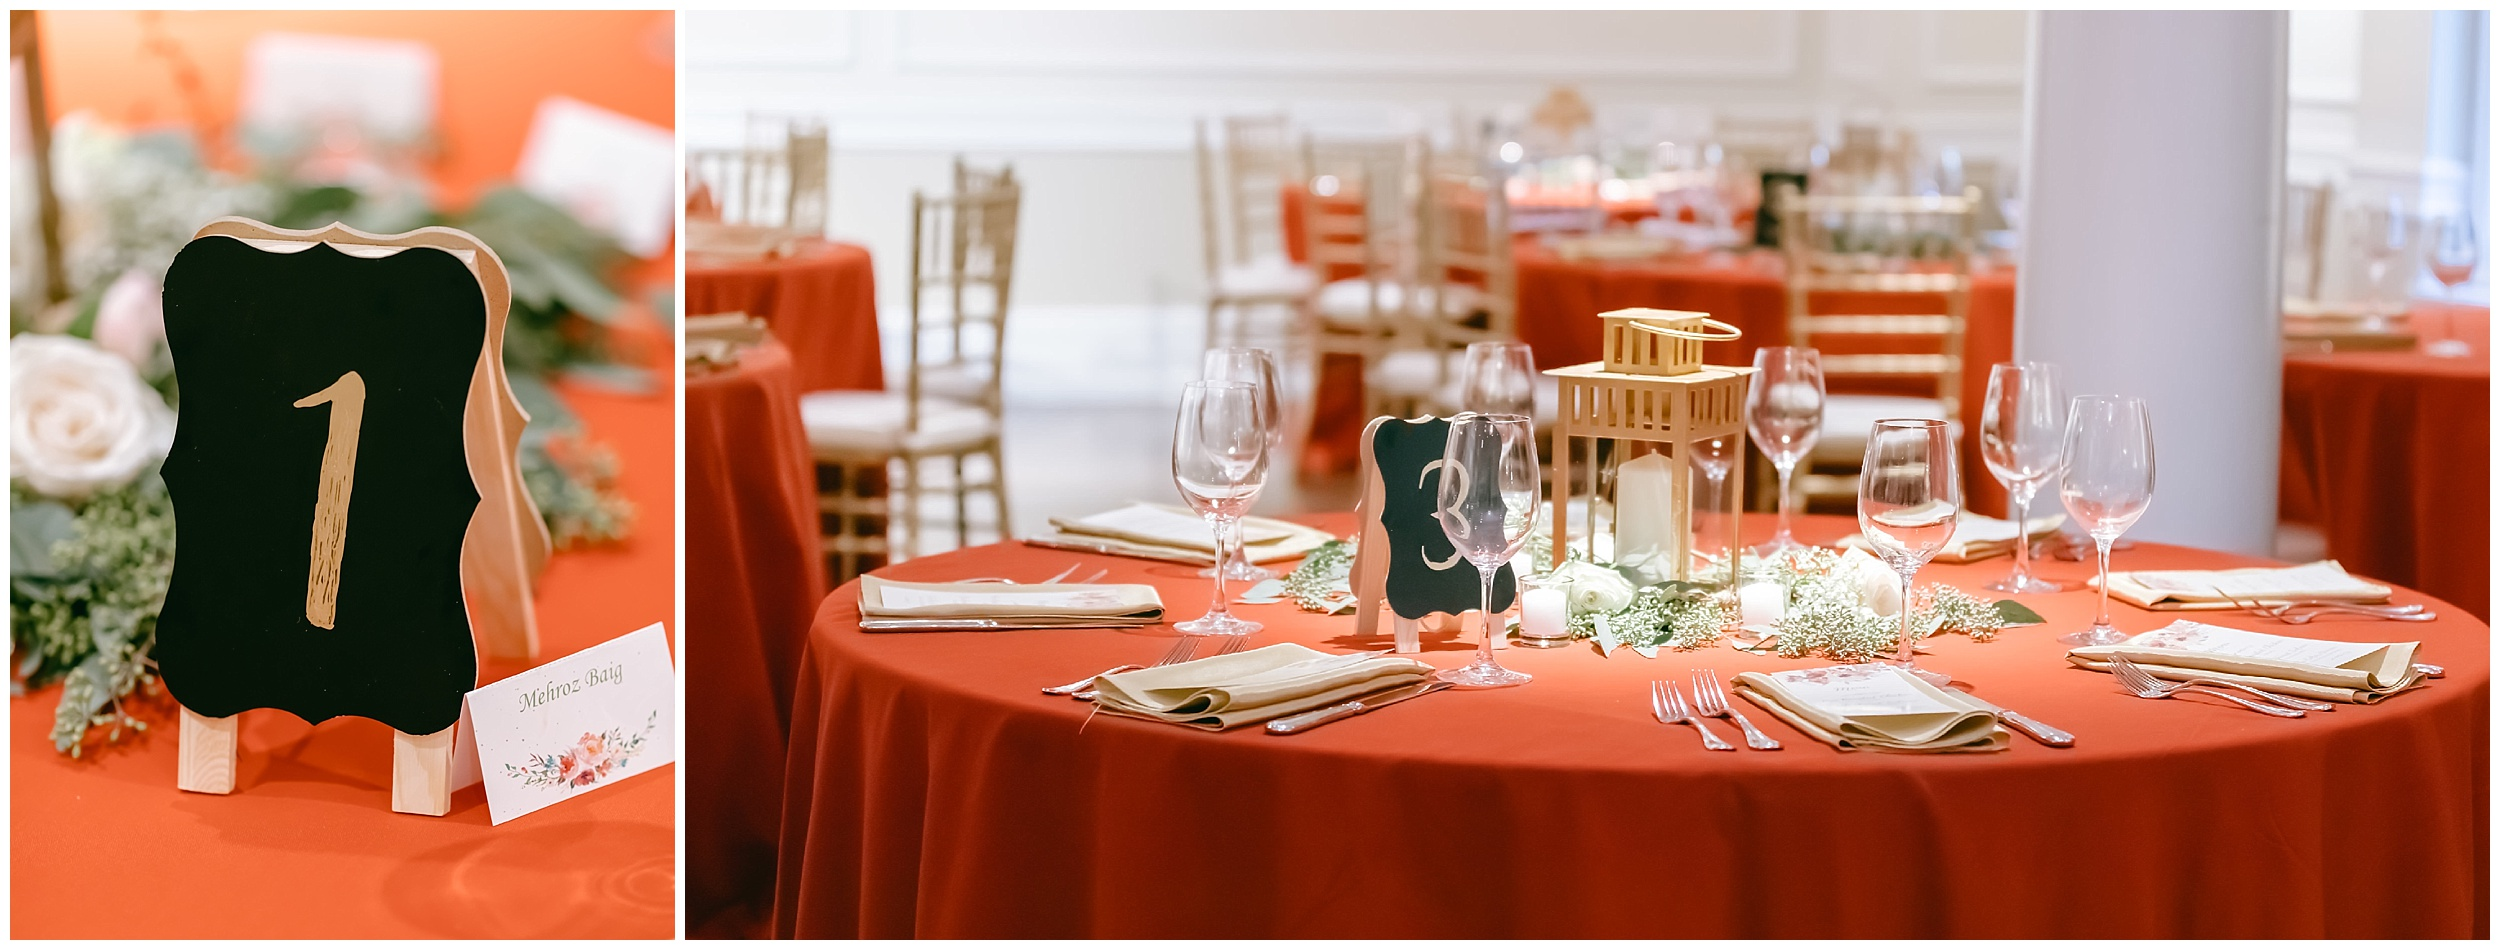 reception details table numbers linen red Whittemore House wedding Washington DC